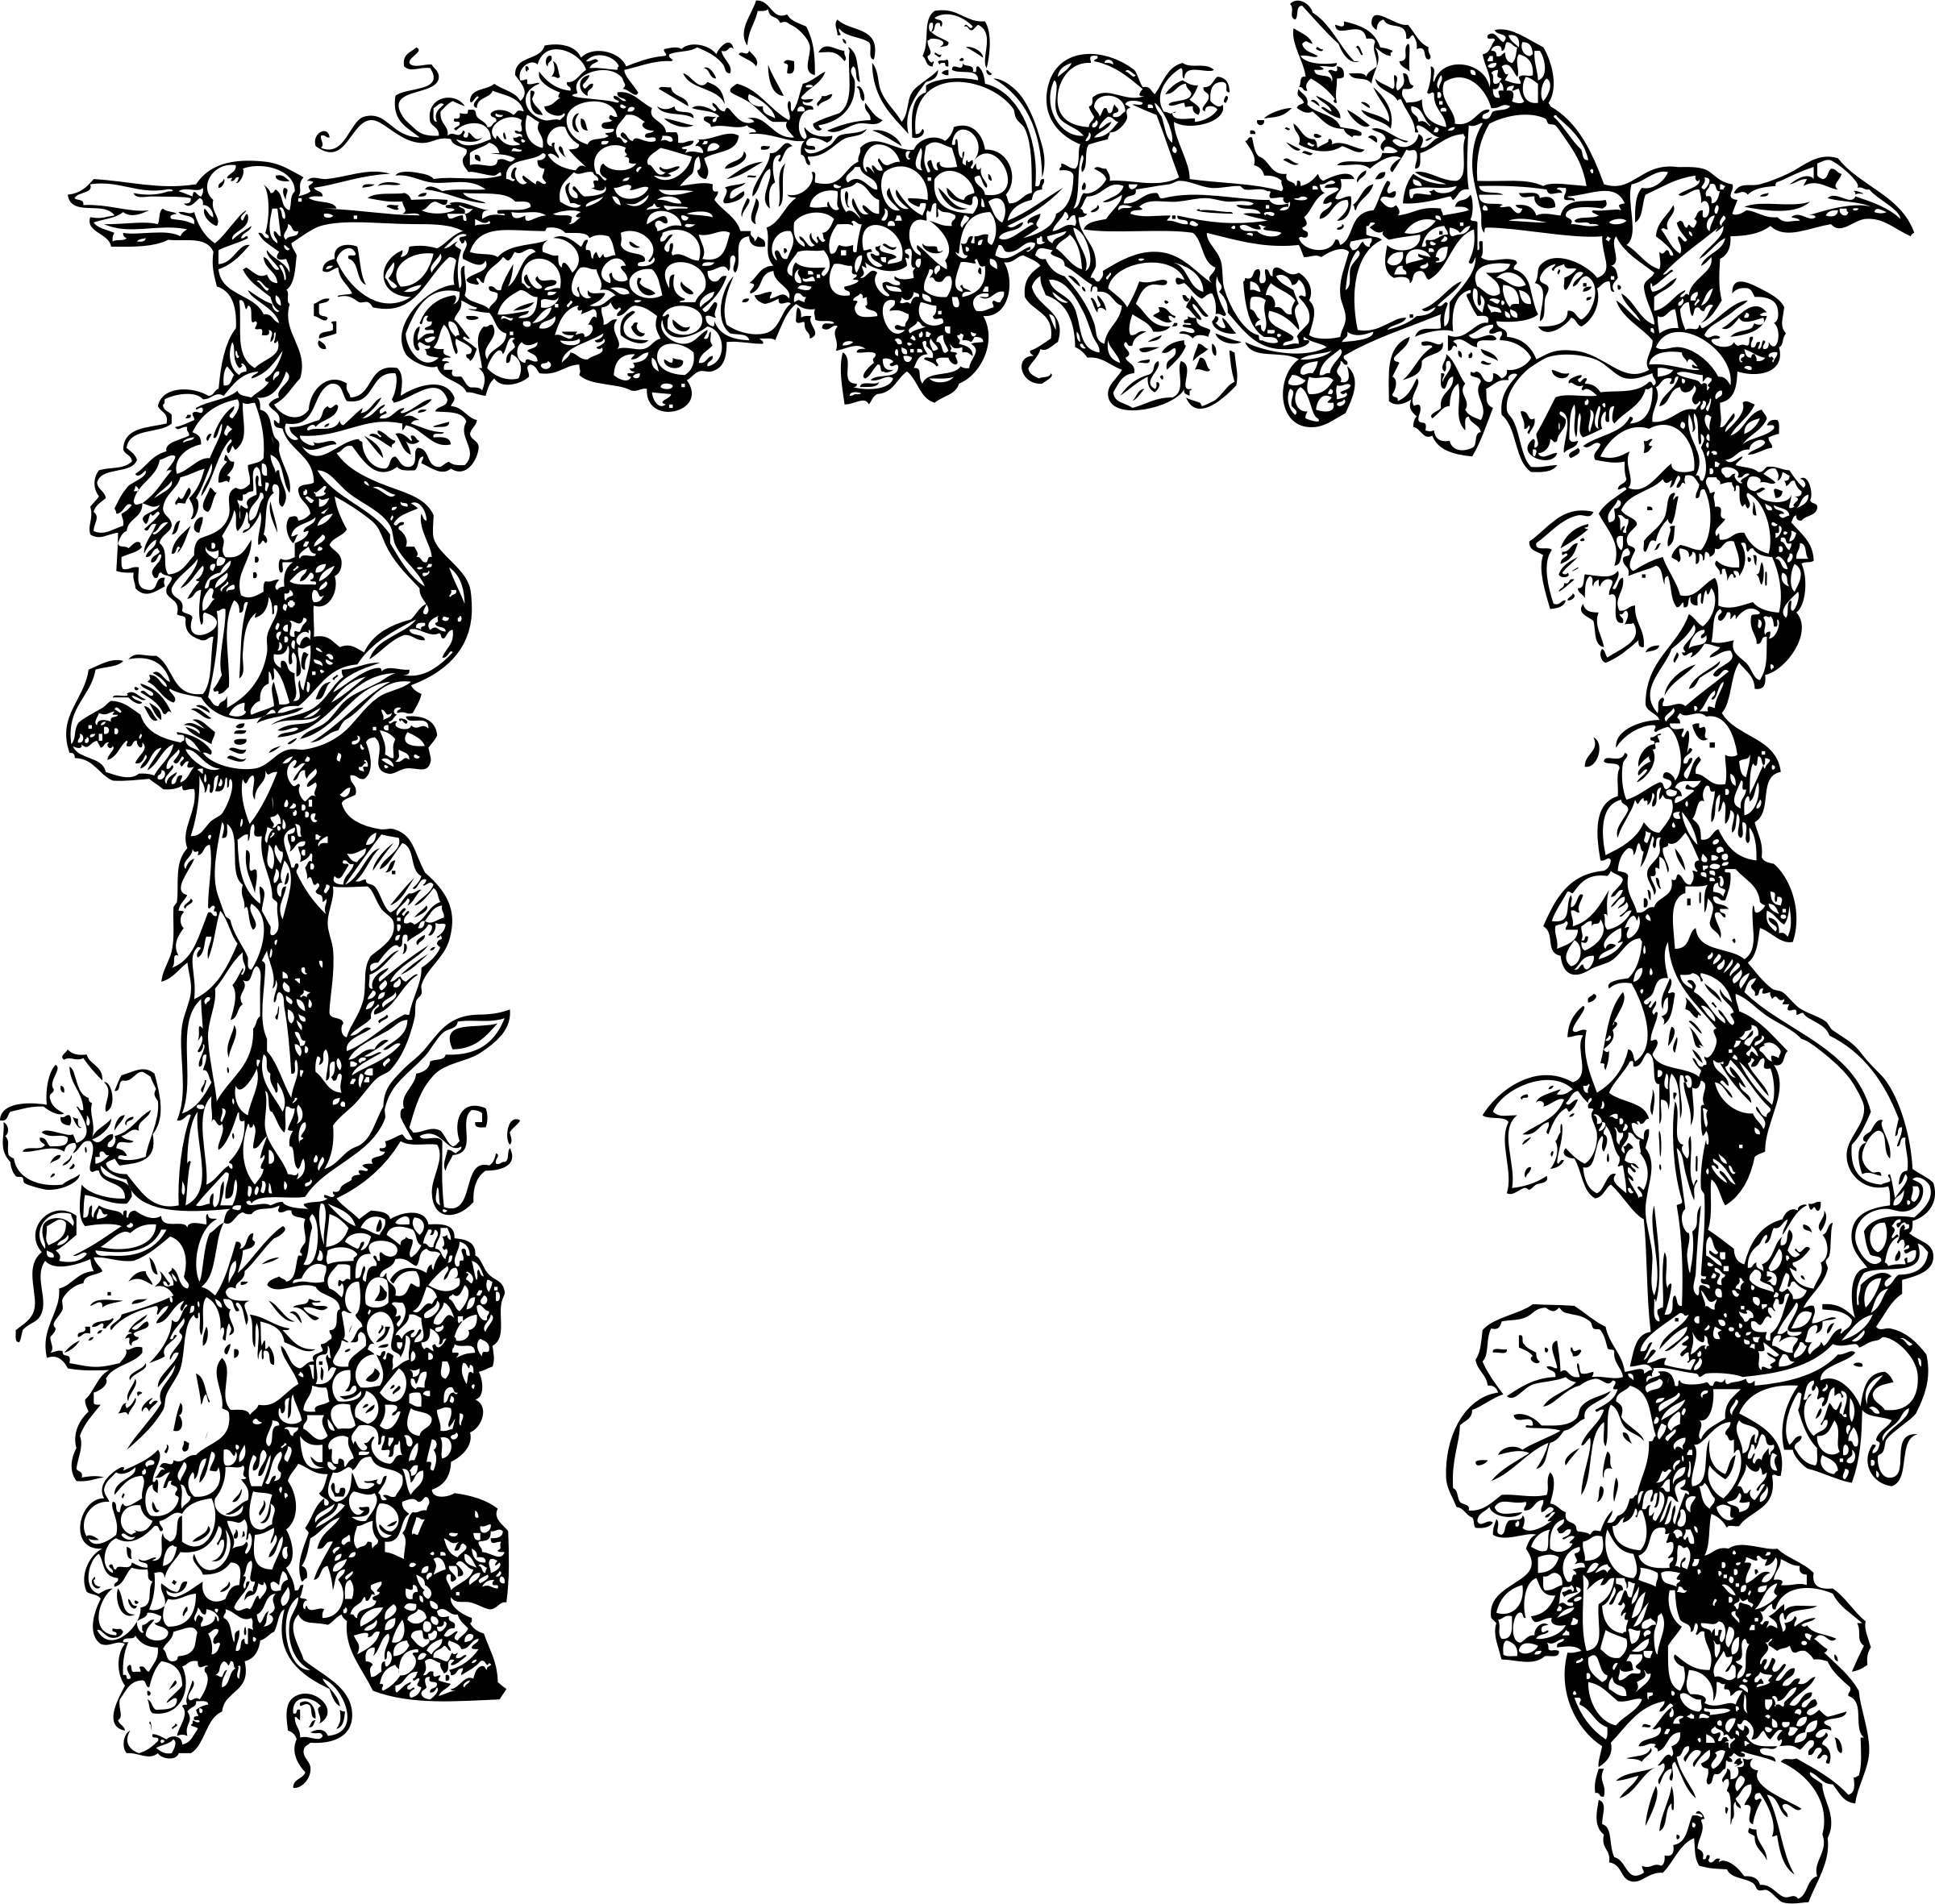 Grapes clipart frame. Grapevine transparent png stickpng